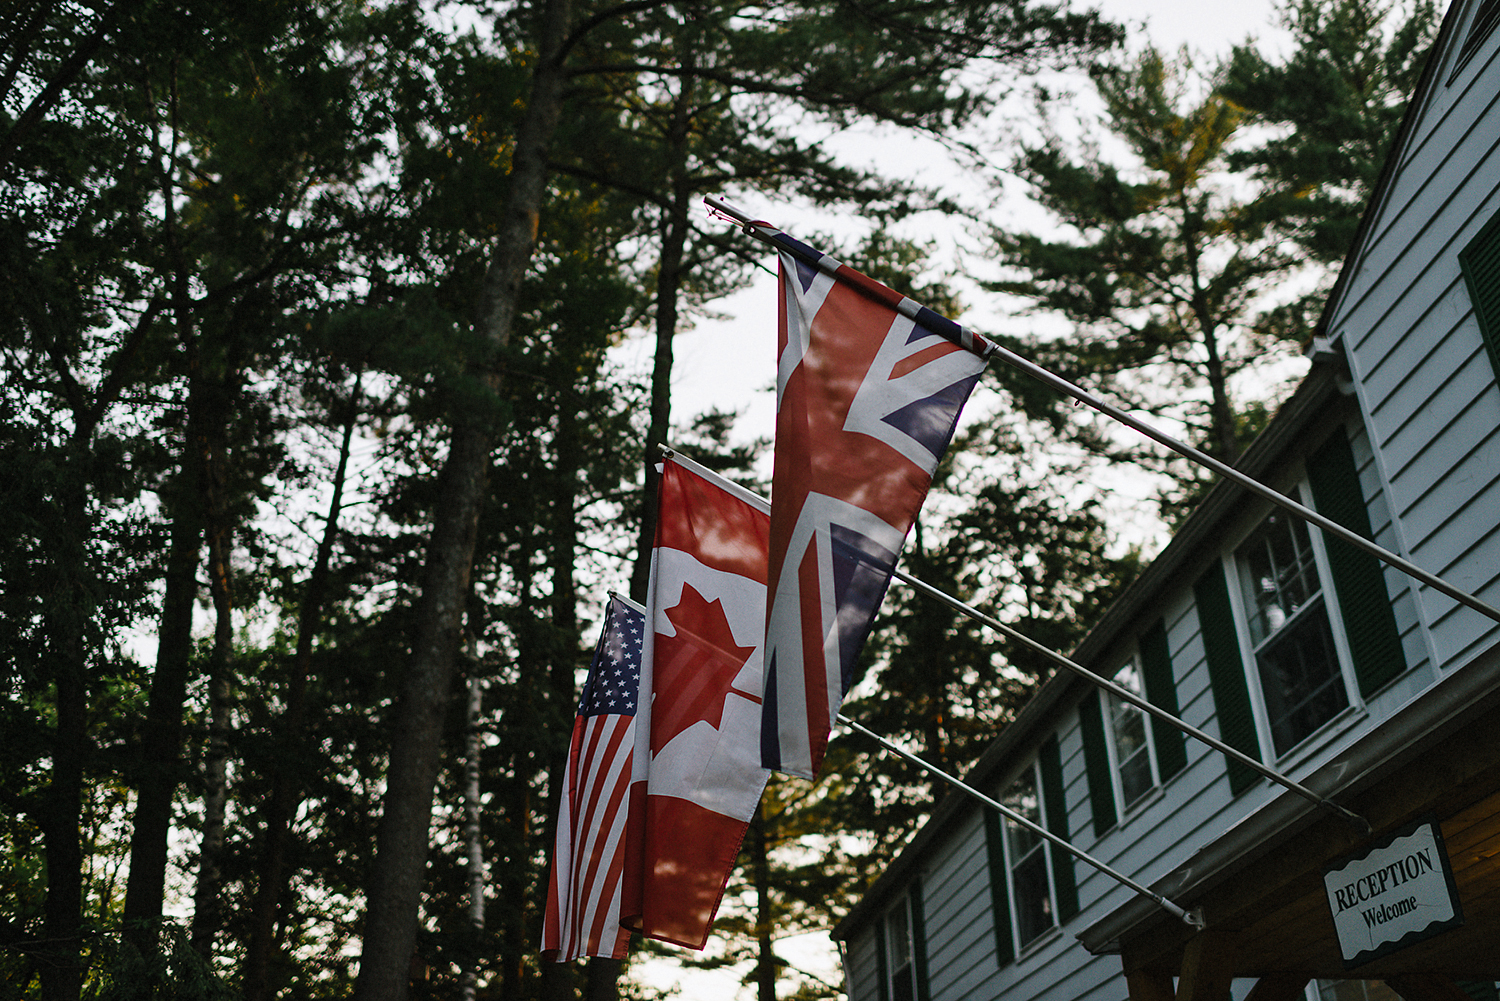 Muskoka-Cottage-Wedding-Photography-Photographer_Photojournalistic-Documentary-Wedding-Photography_Lakeside-Ceremony-Sunset-Light-on-flags.jpg